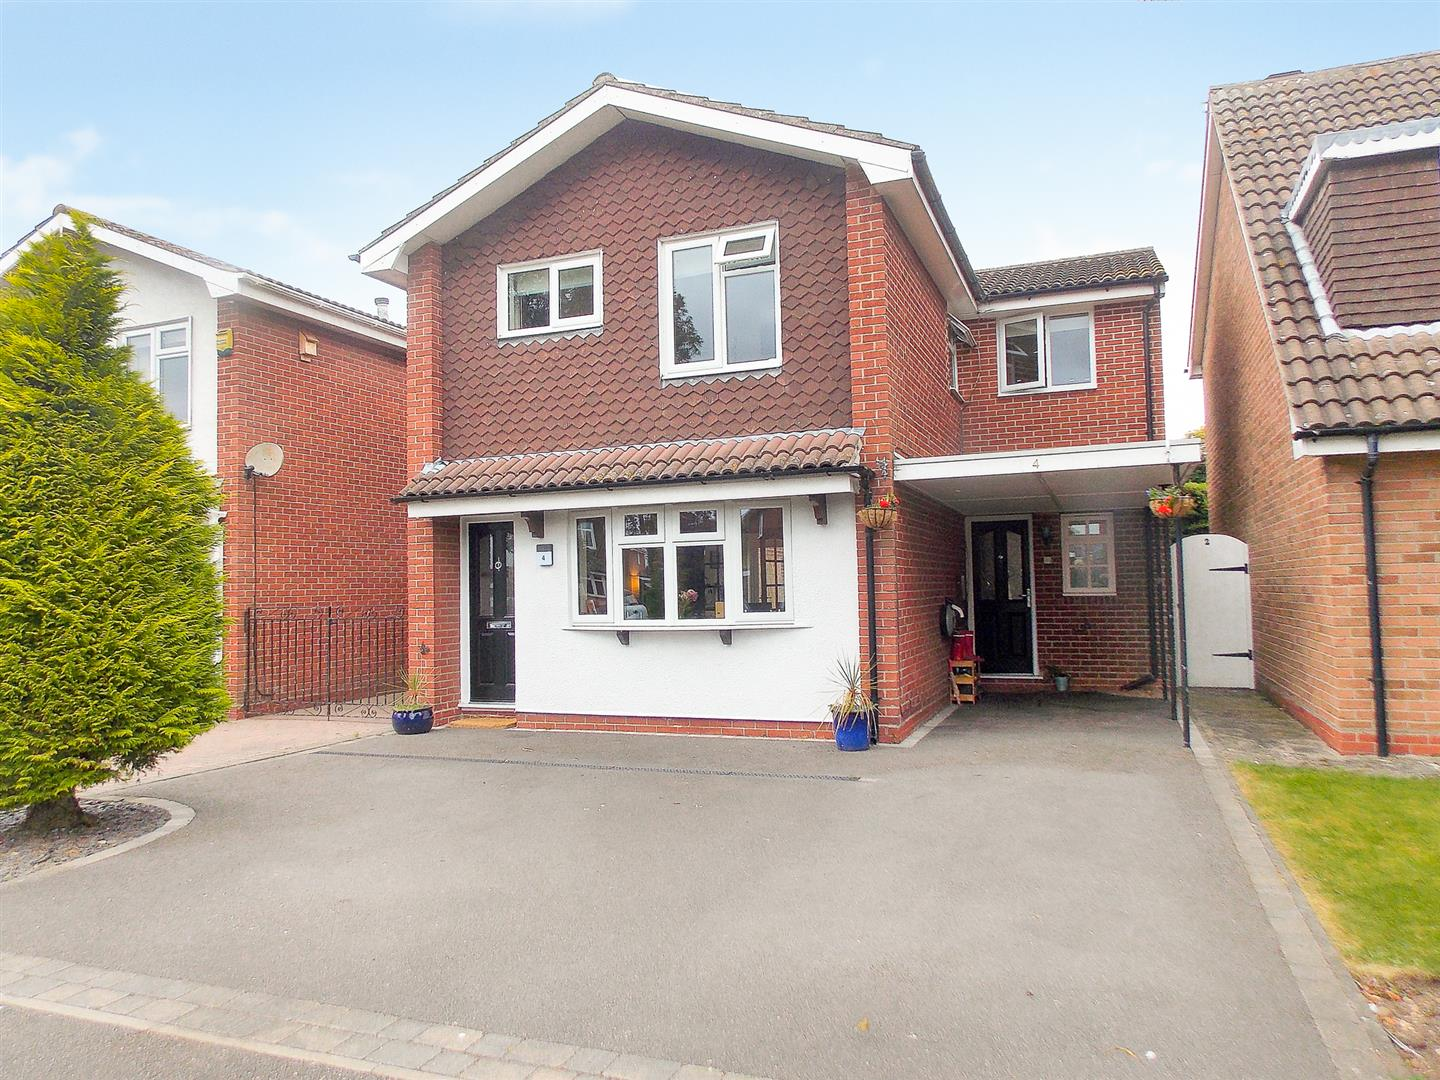 4 Bedrooms Detached House for sale in Plackett Close, Breaston